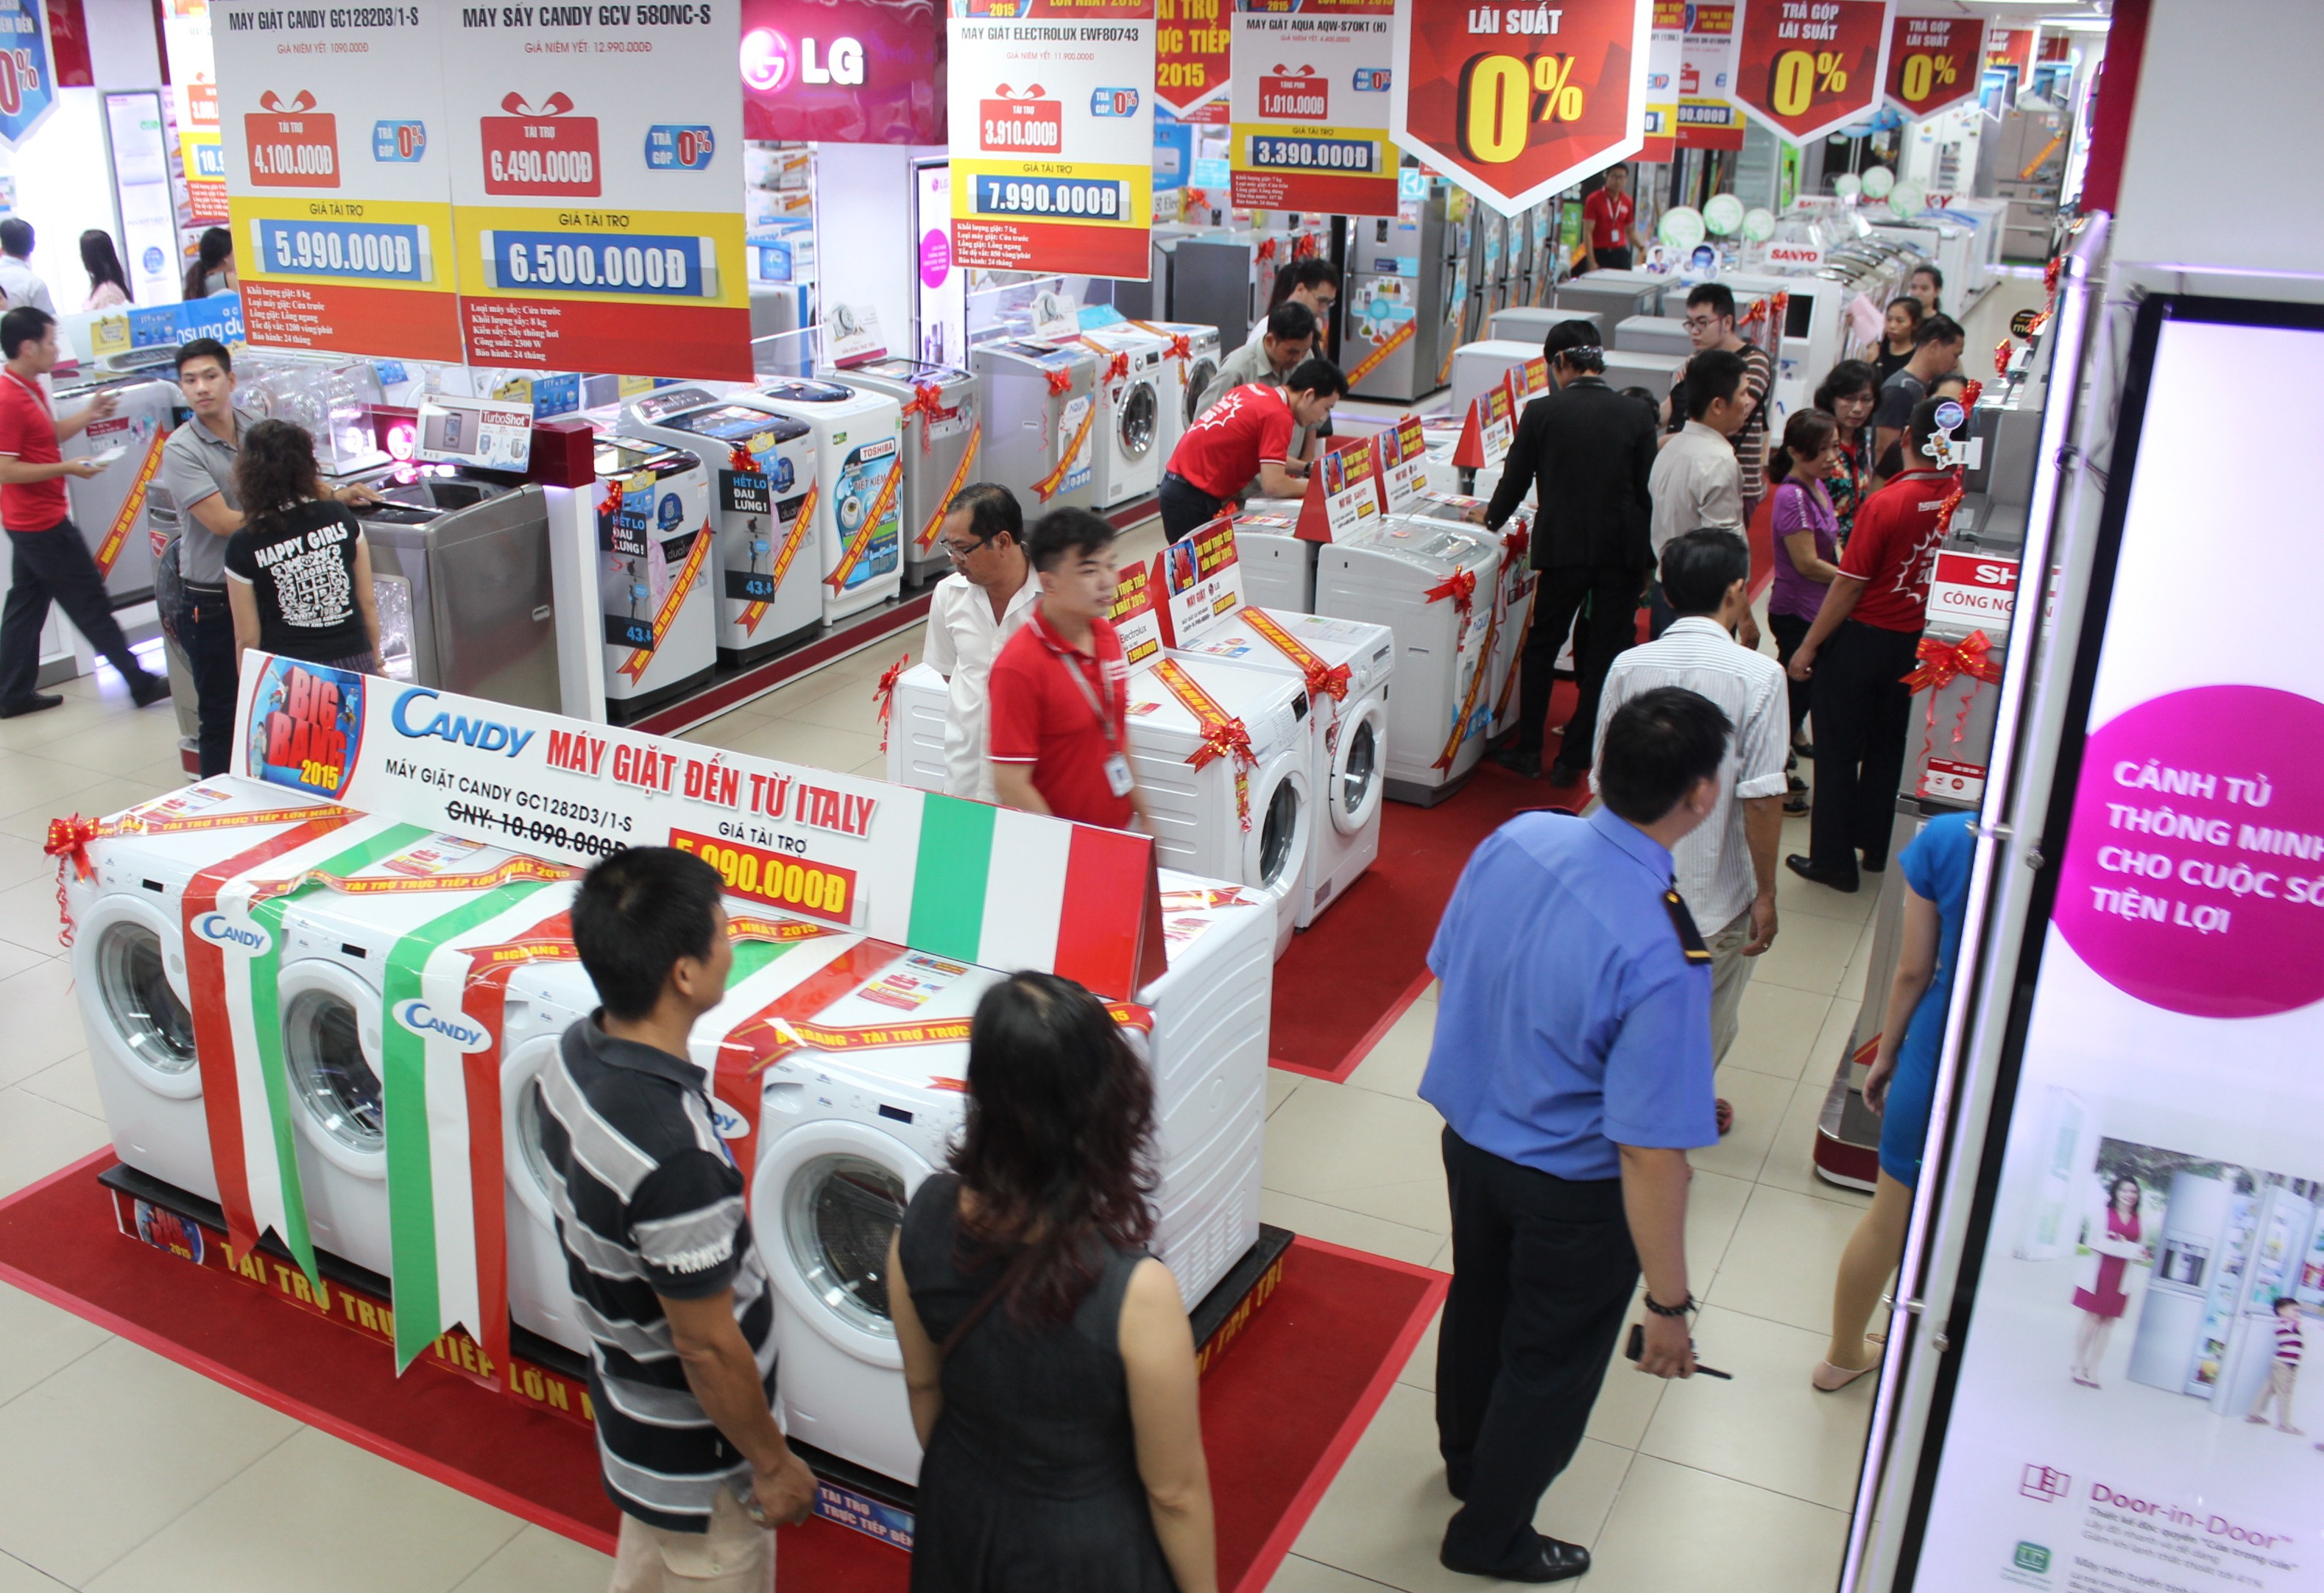 Thailand occupies 50% of Vietnam household appliances market share